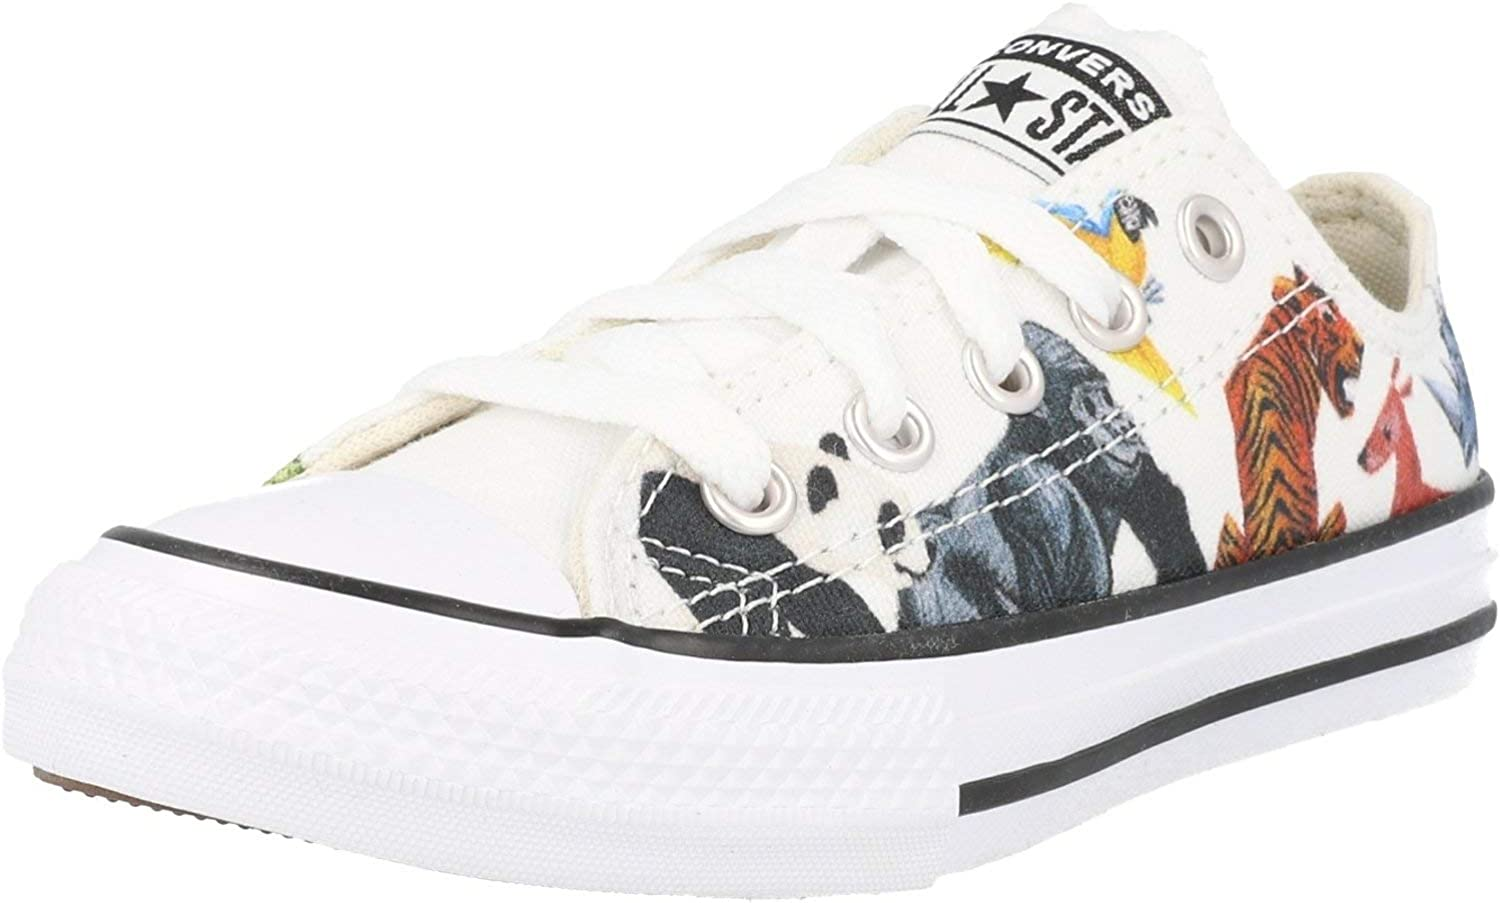 Converse Chuck Taylor All Star Science Class Ox White/Black Canvas Junior Trainers Shoes